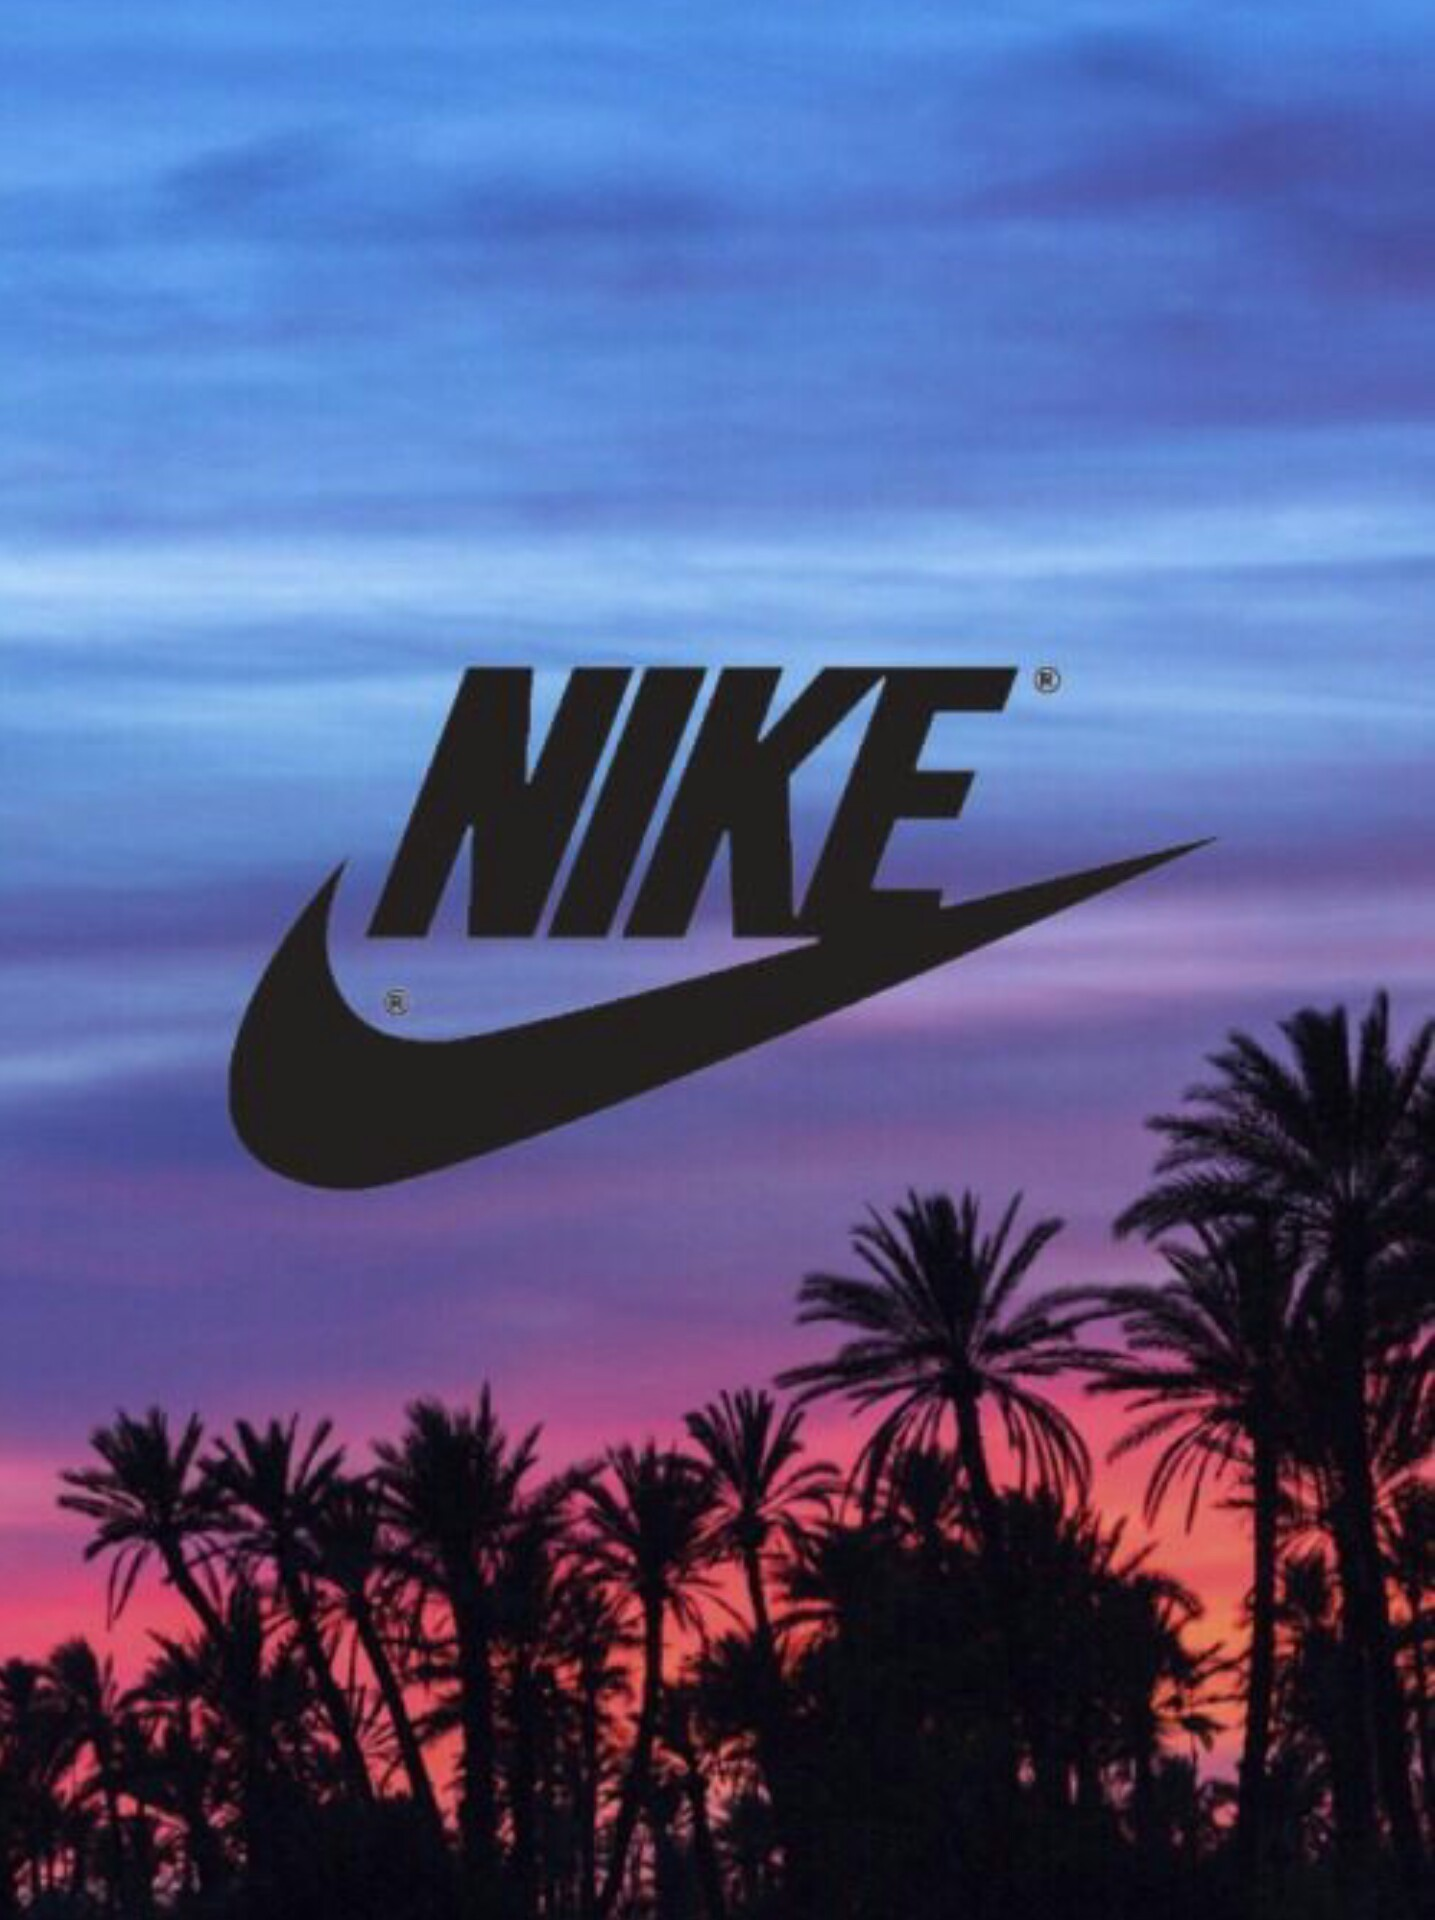 Wallpaper Android Hd Girl Dope Nike Wallpaper 79 Images